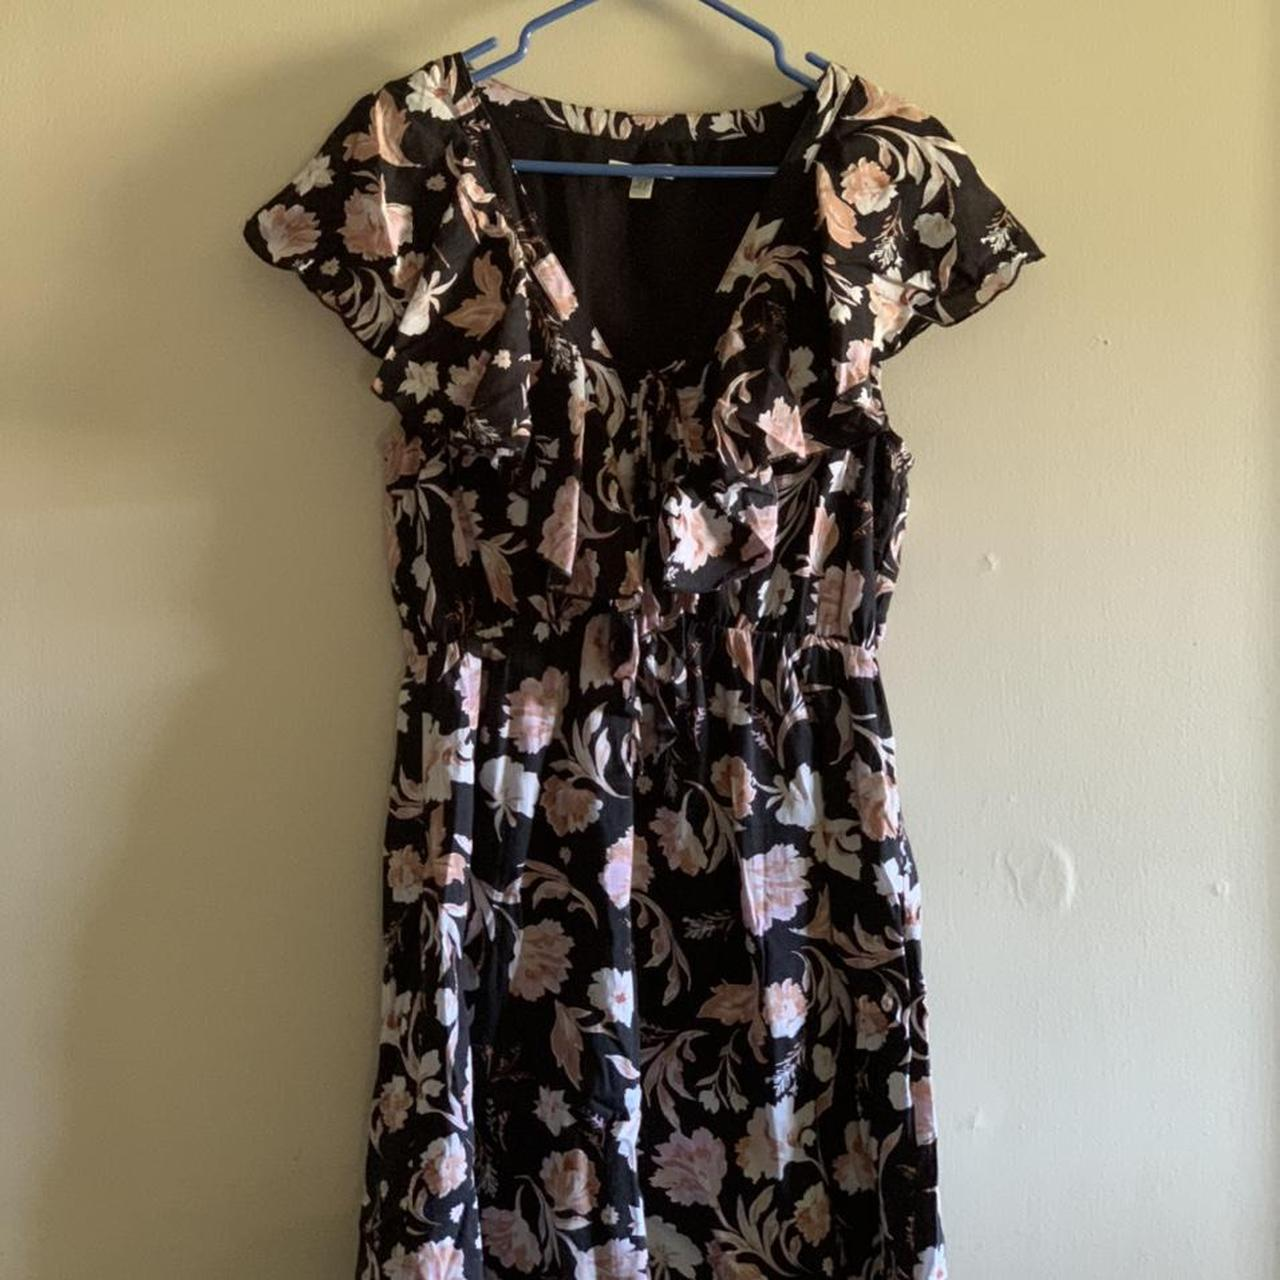 Product Image 1 - cute floral dress, thrifted ages